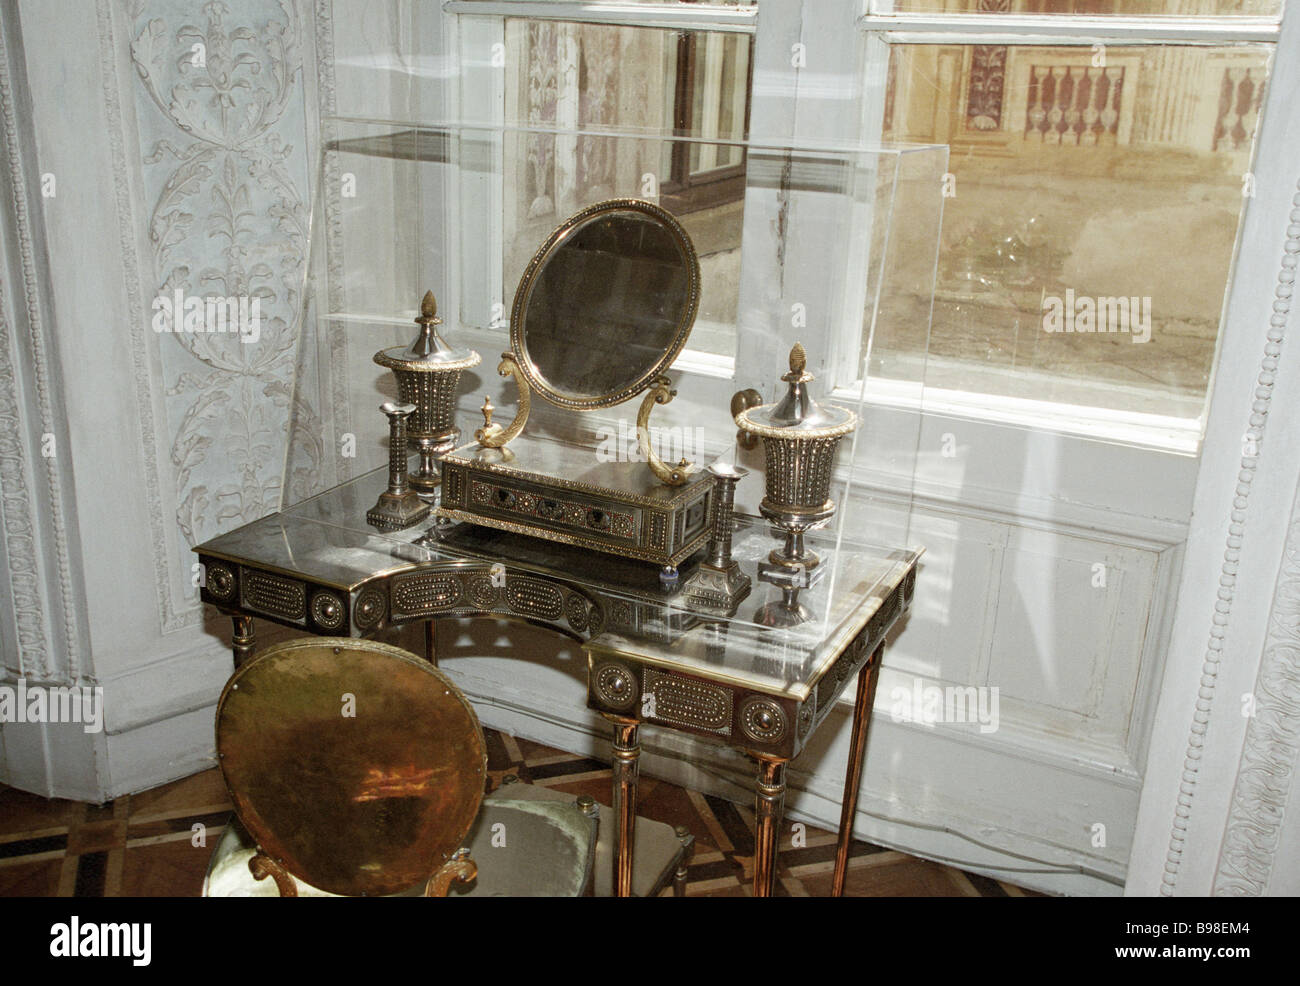 Steel dressing table made by Tula smiths in the end of XVIII century From the collection of the Pavlovsk museum - Stock Image